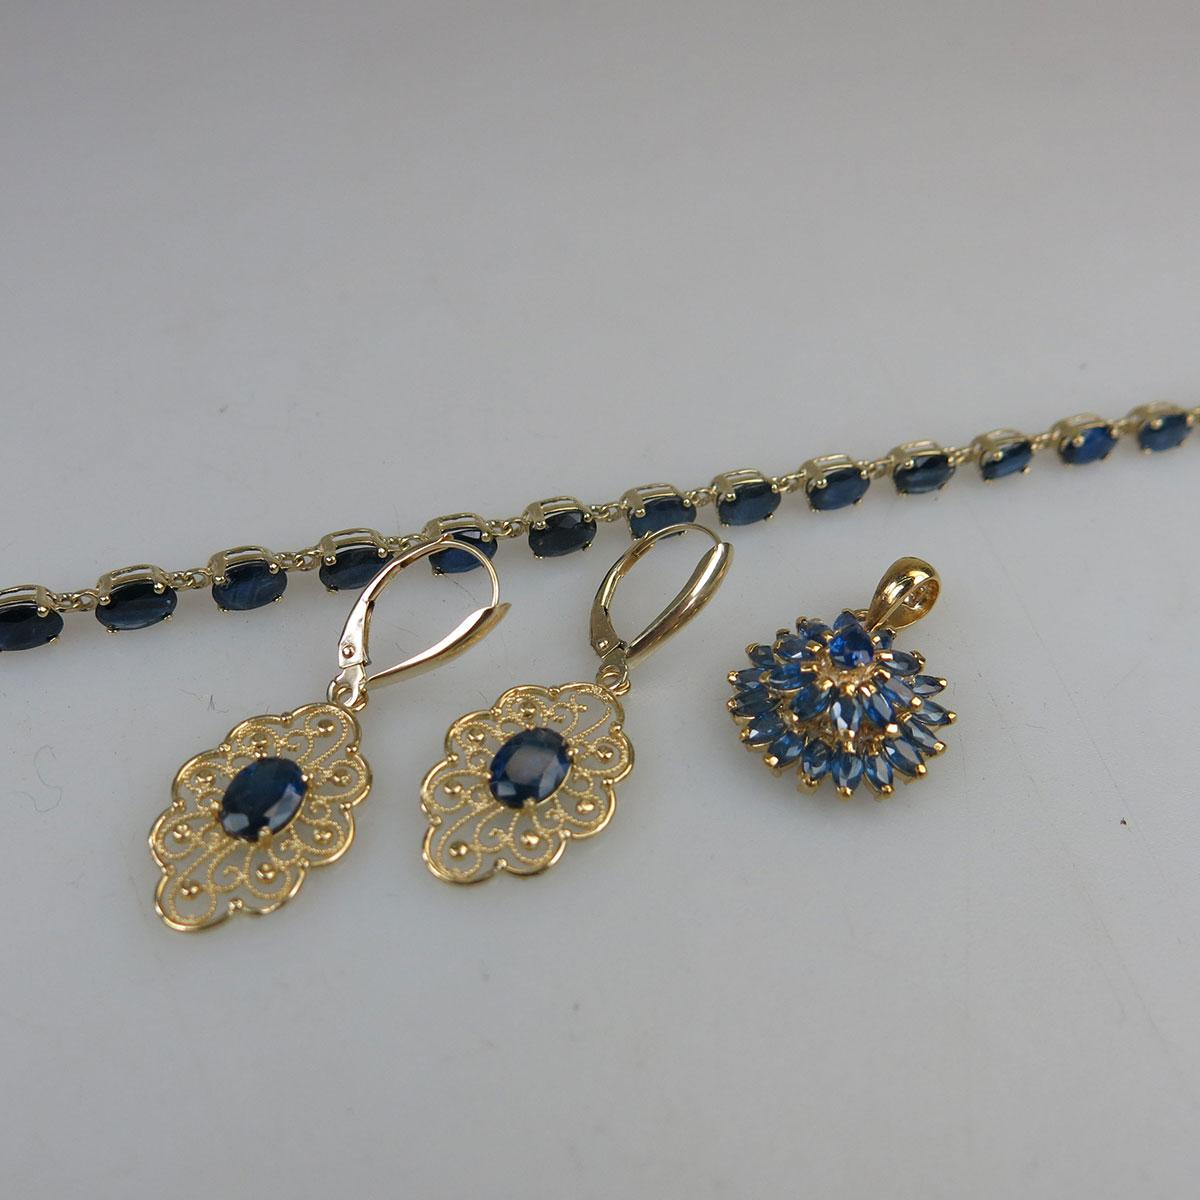 10k Yellow Gold Bracelet And 14k Yellow Gold Pendant And Earrings